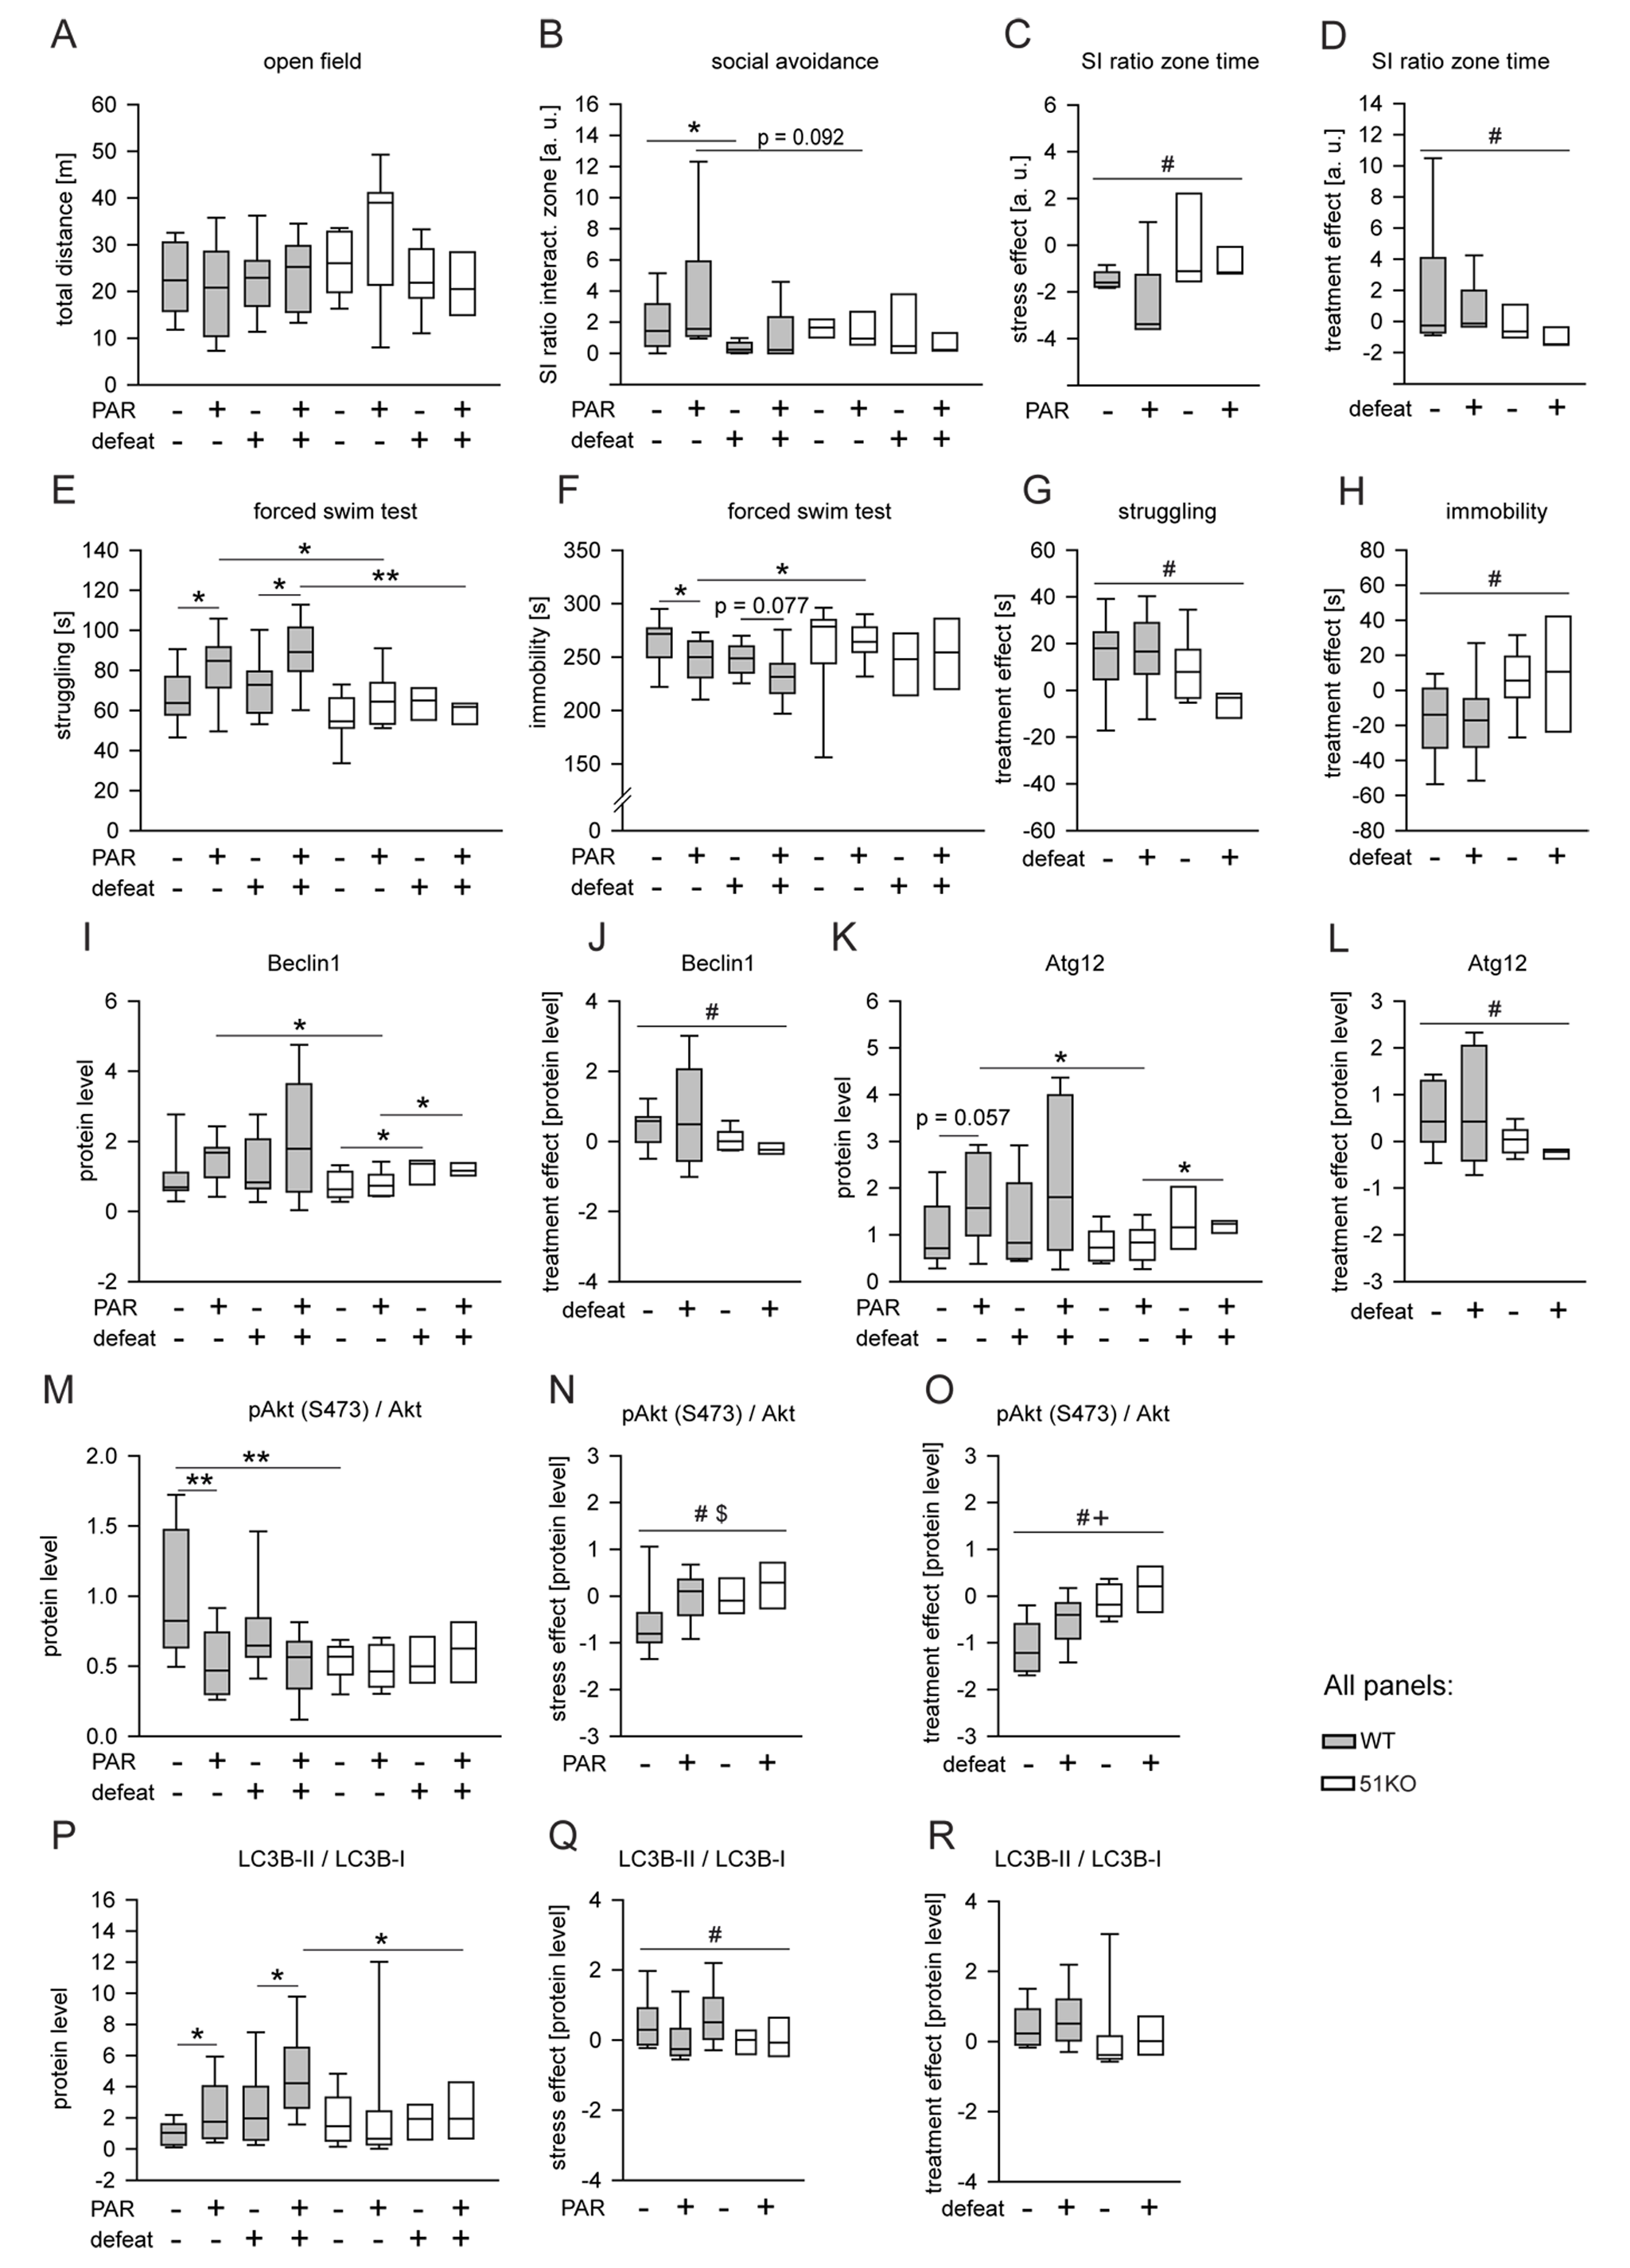 FKBP51 is required for the chronic effects of PAR on behavior and autophagic pathways.